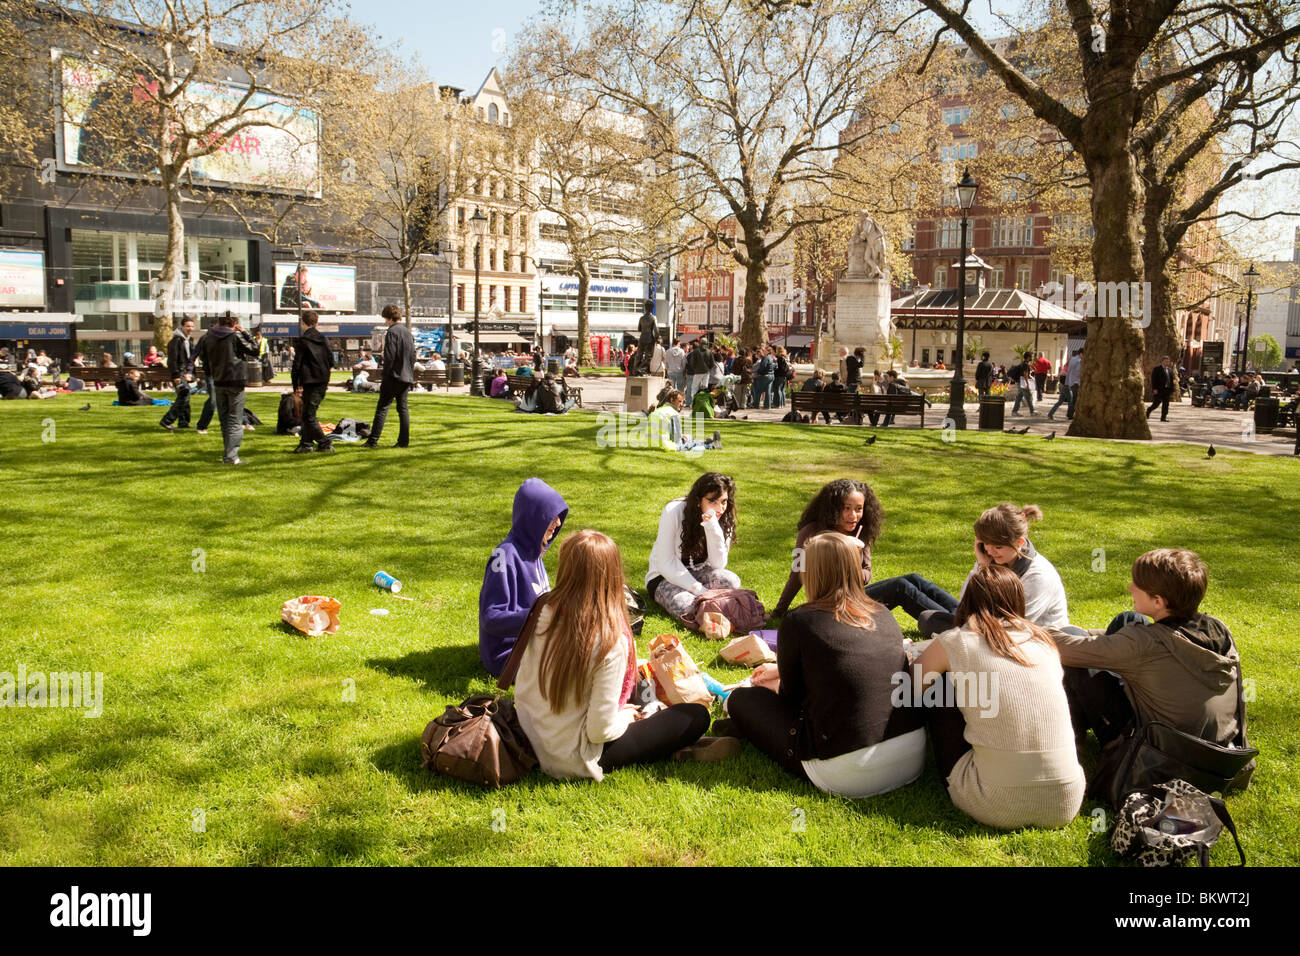 A group of teenagers sitting on the grass in the summer sunshine, Leicester Square, London UK - Stock Image